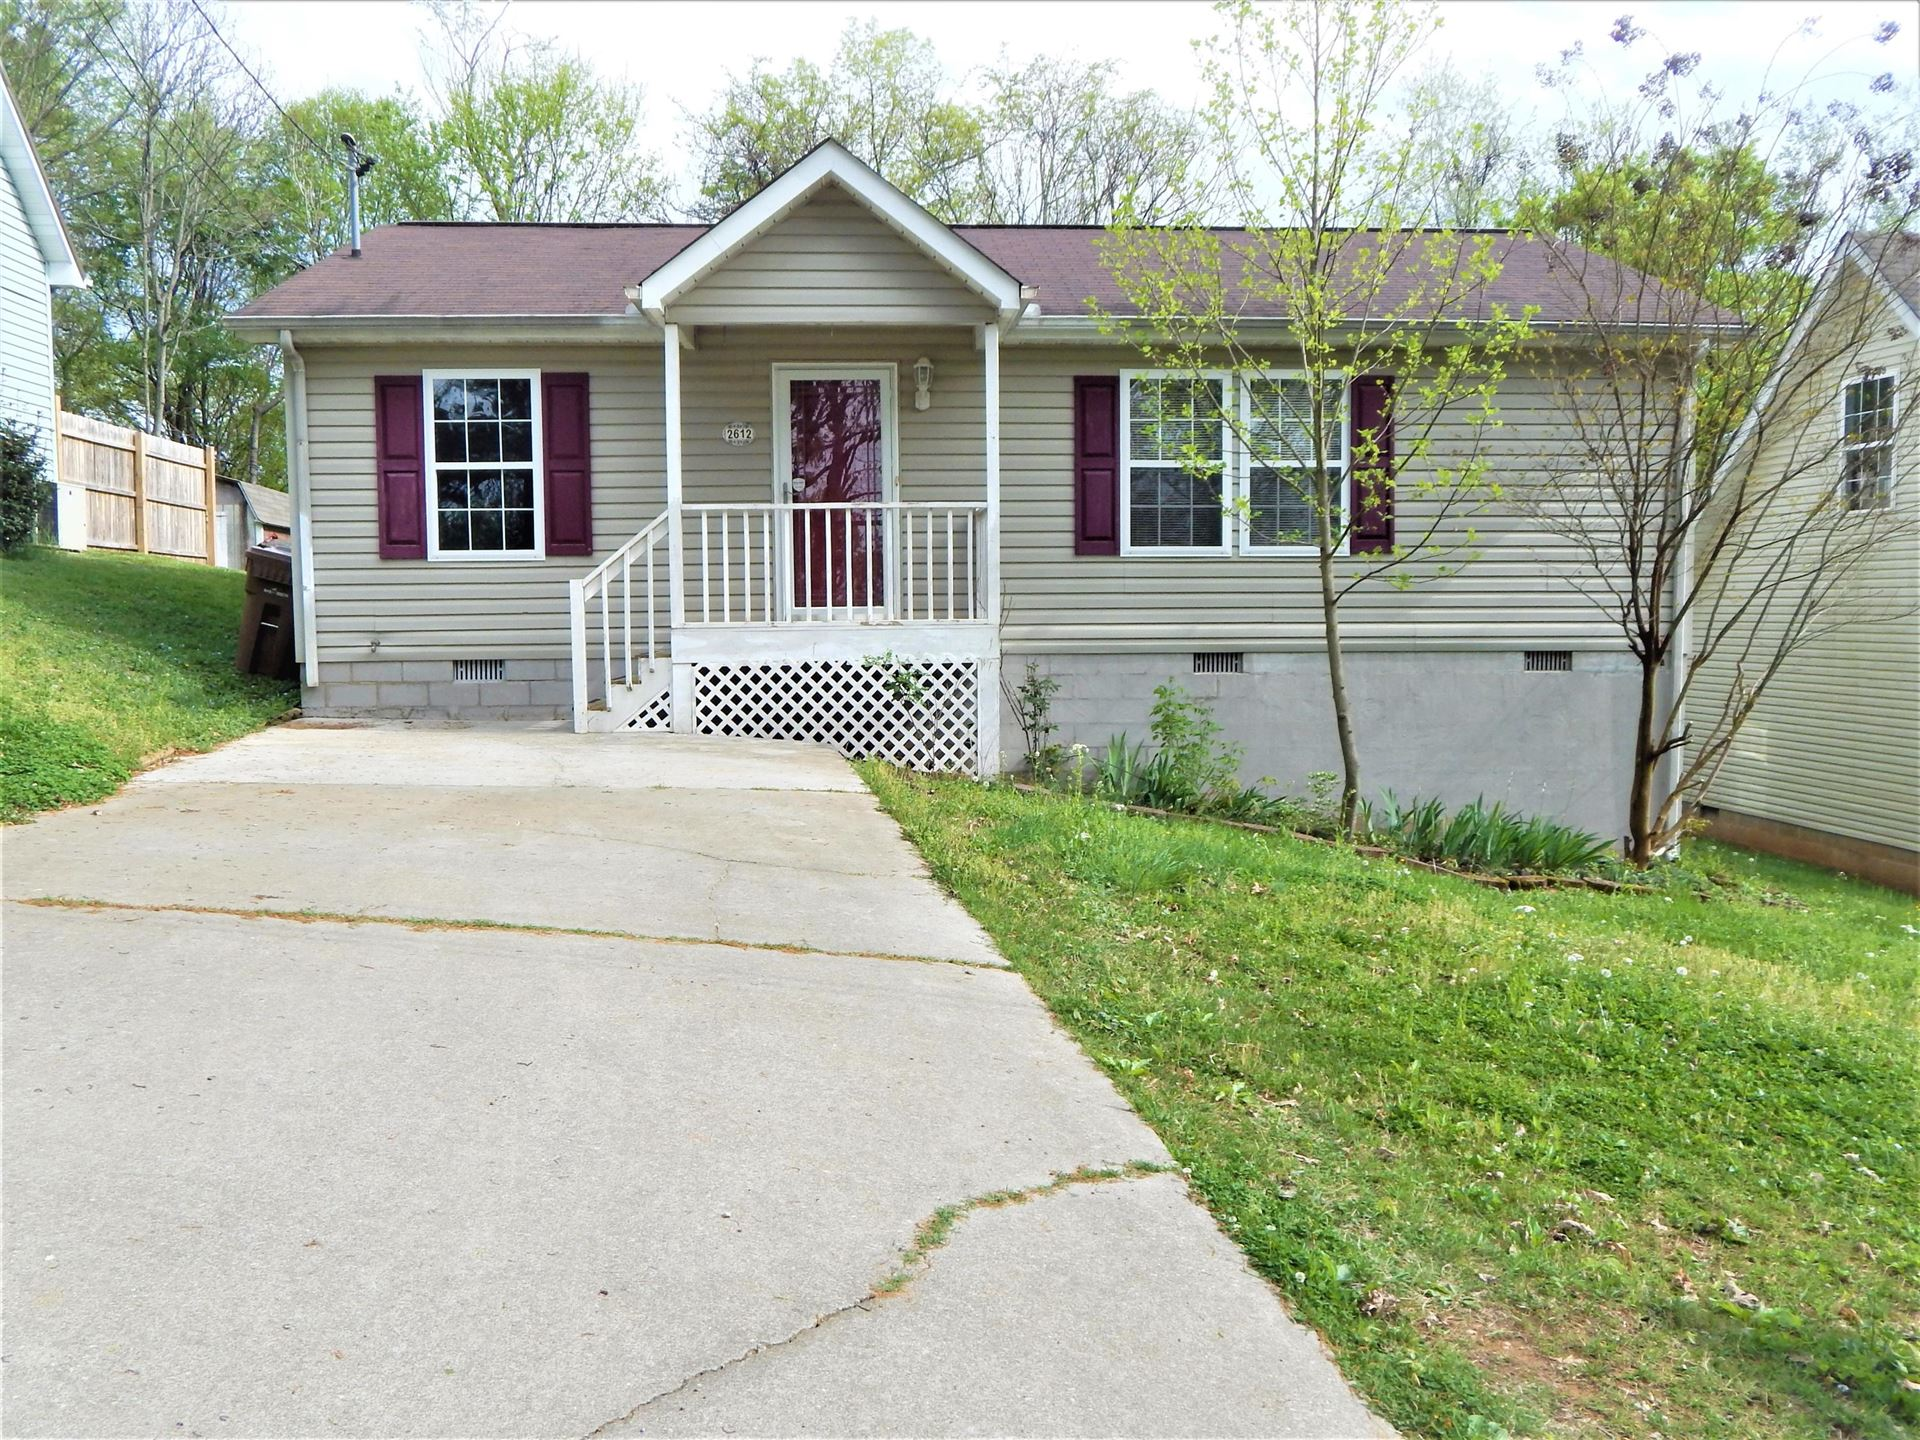 Photo of 2612 Vucrest Ave, Knoxville, TN 37920 (MLS # 1149138)